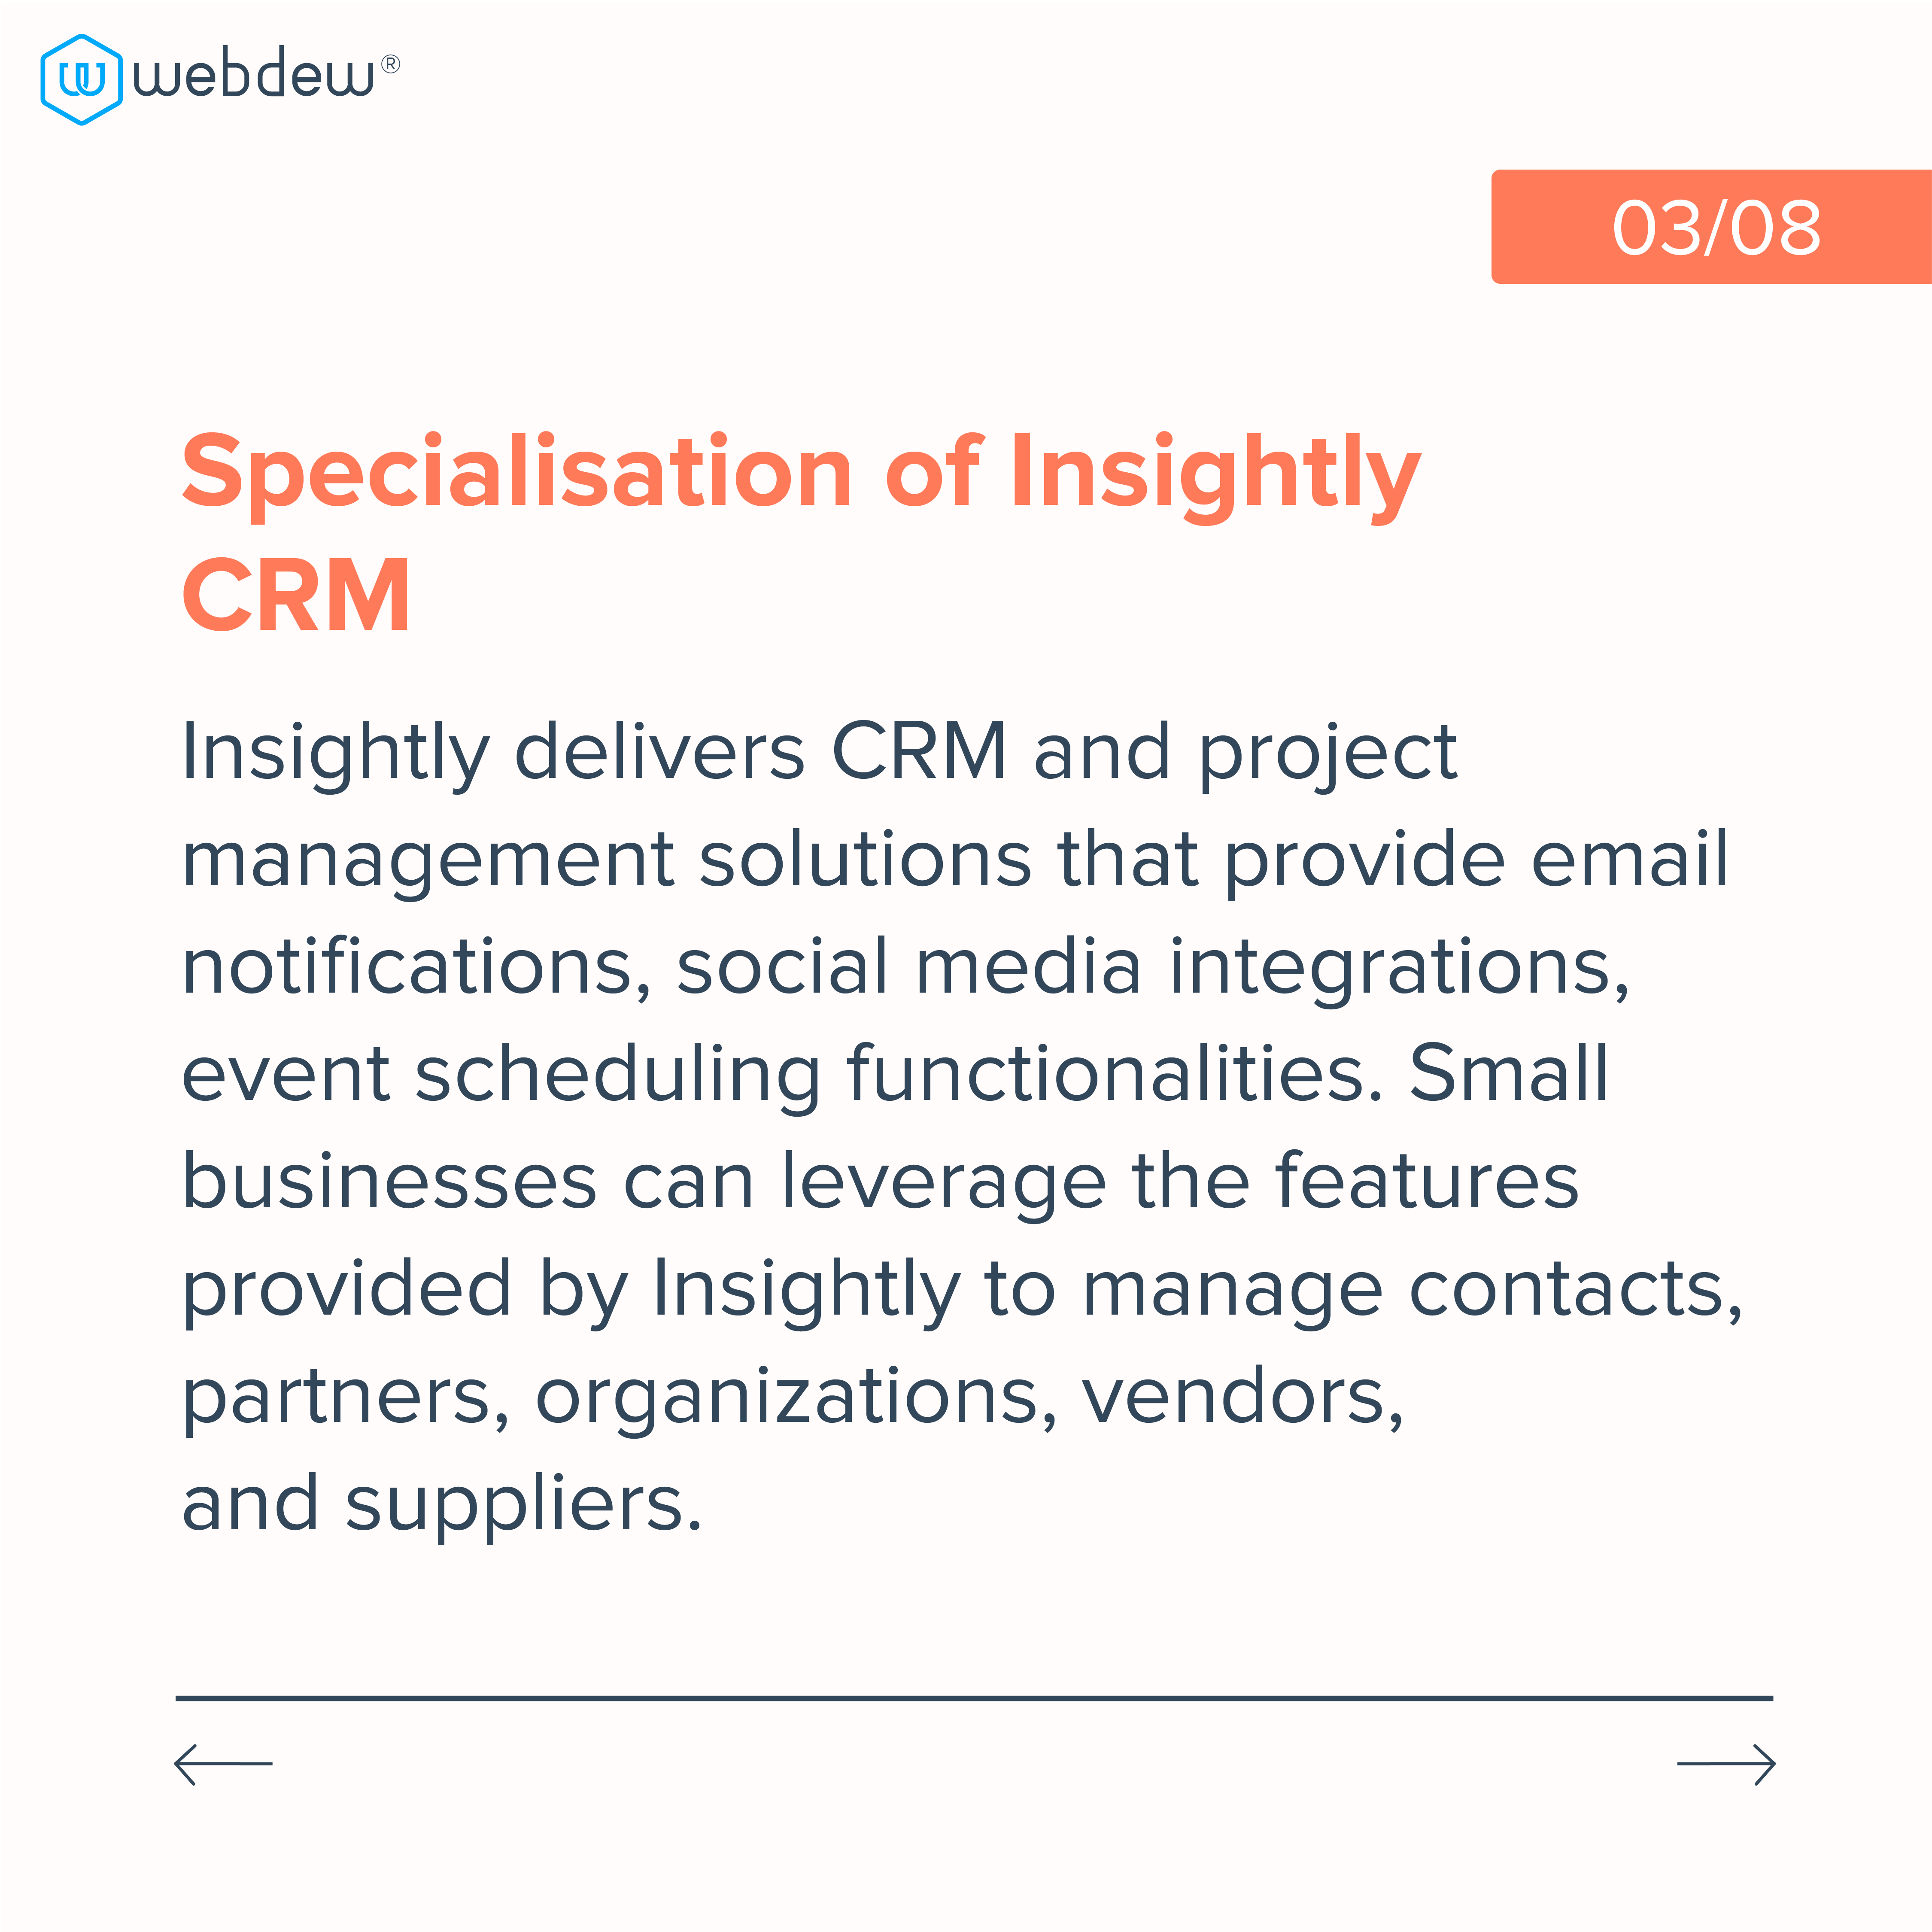 3. specialization of insightly CRM